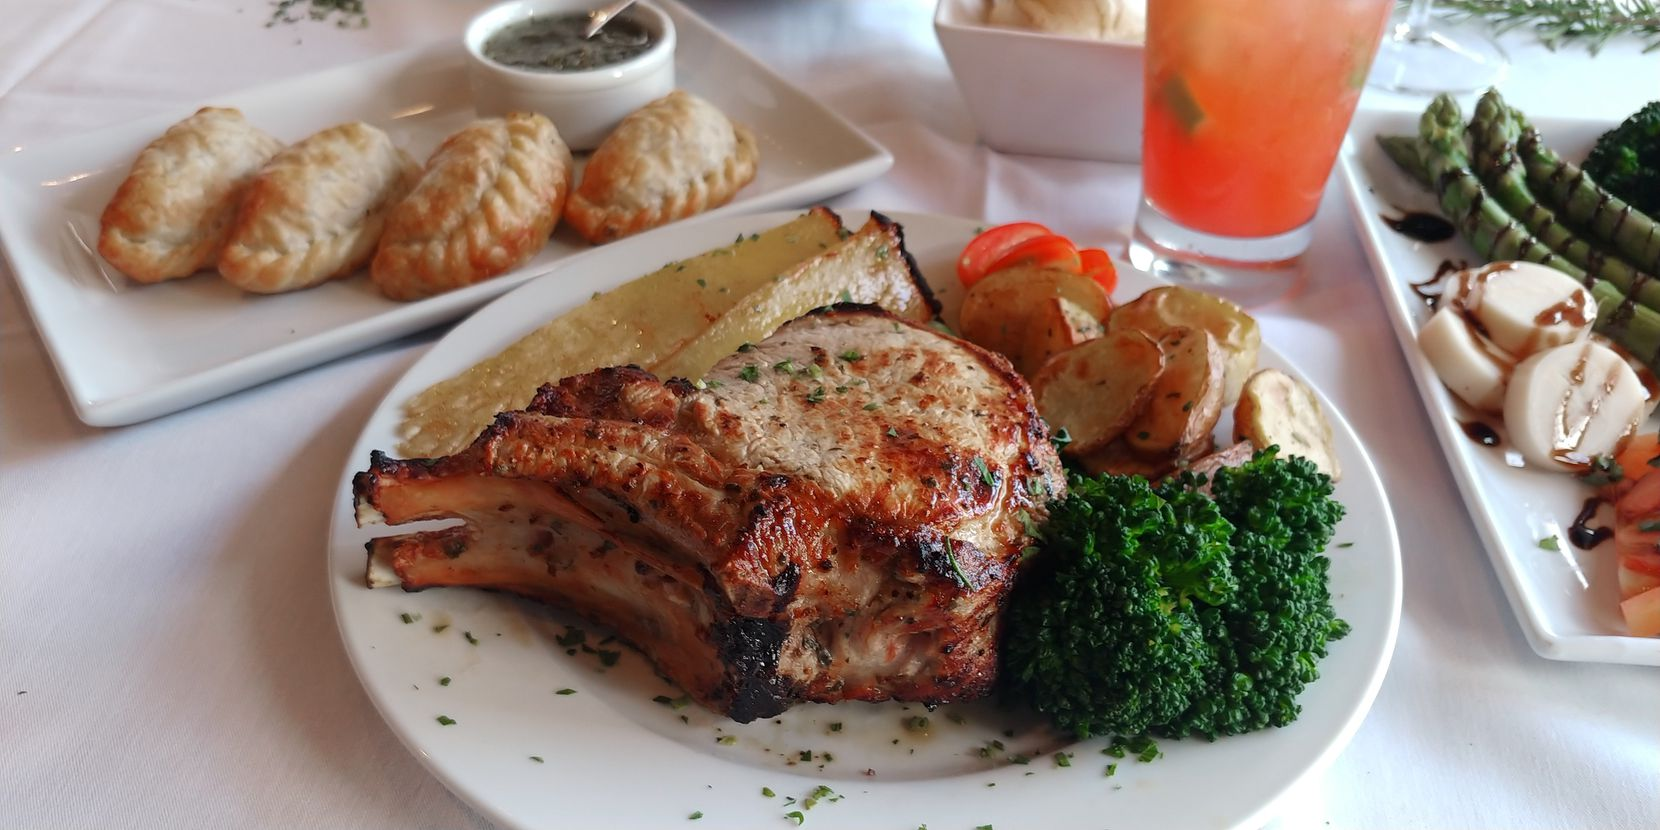 12 Cuts Brazilian Steakhouse's four-course holiday takeout menu that serves three people includes grilled bone-in pork chops, grilled pineapple, broccolini, mashed potatoes, beef empanadas, cheese bread, chimichurri and a choice of chocolate cake or flan.